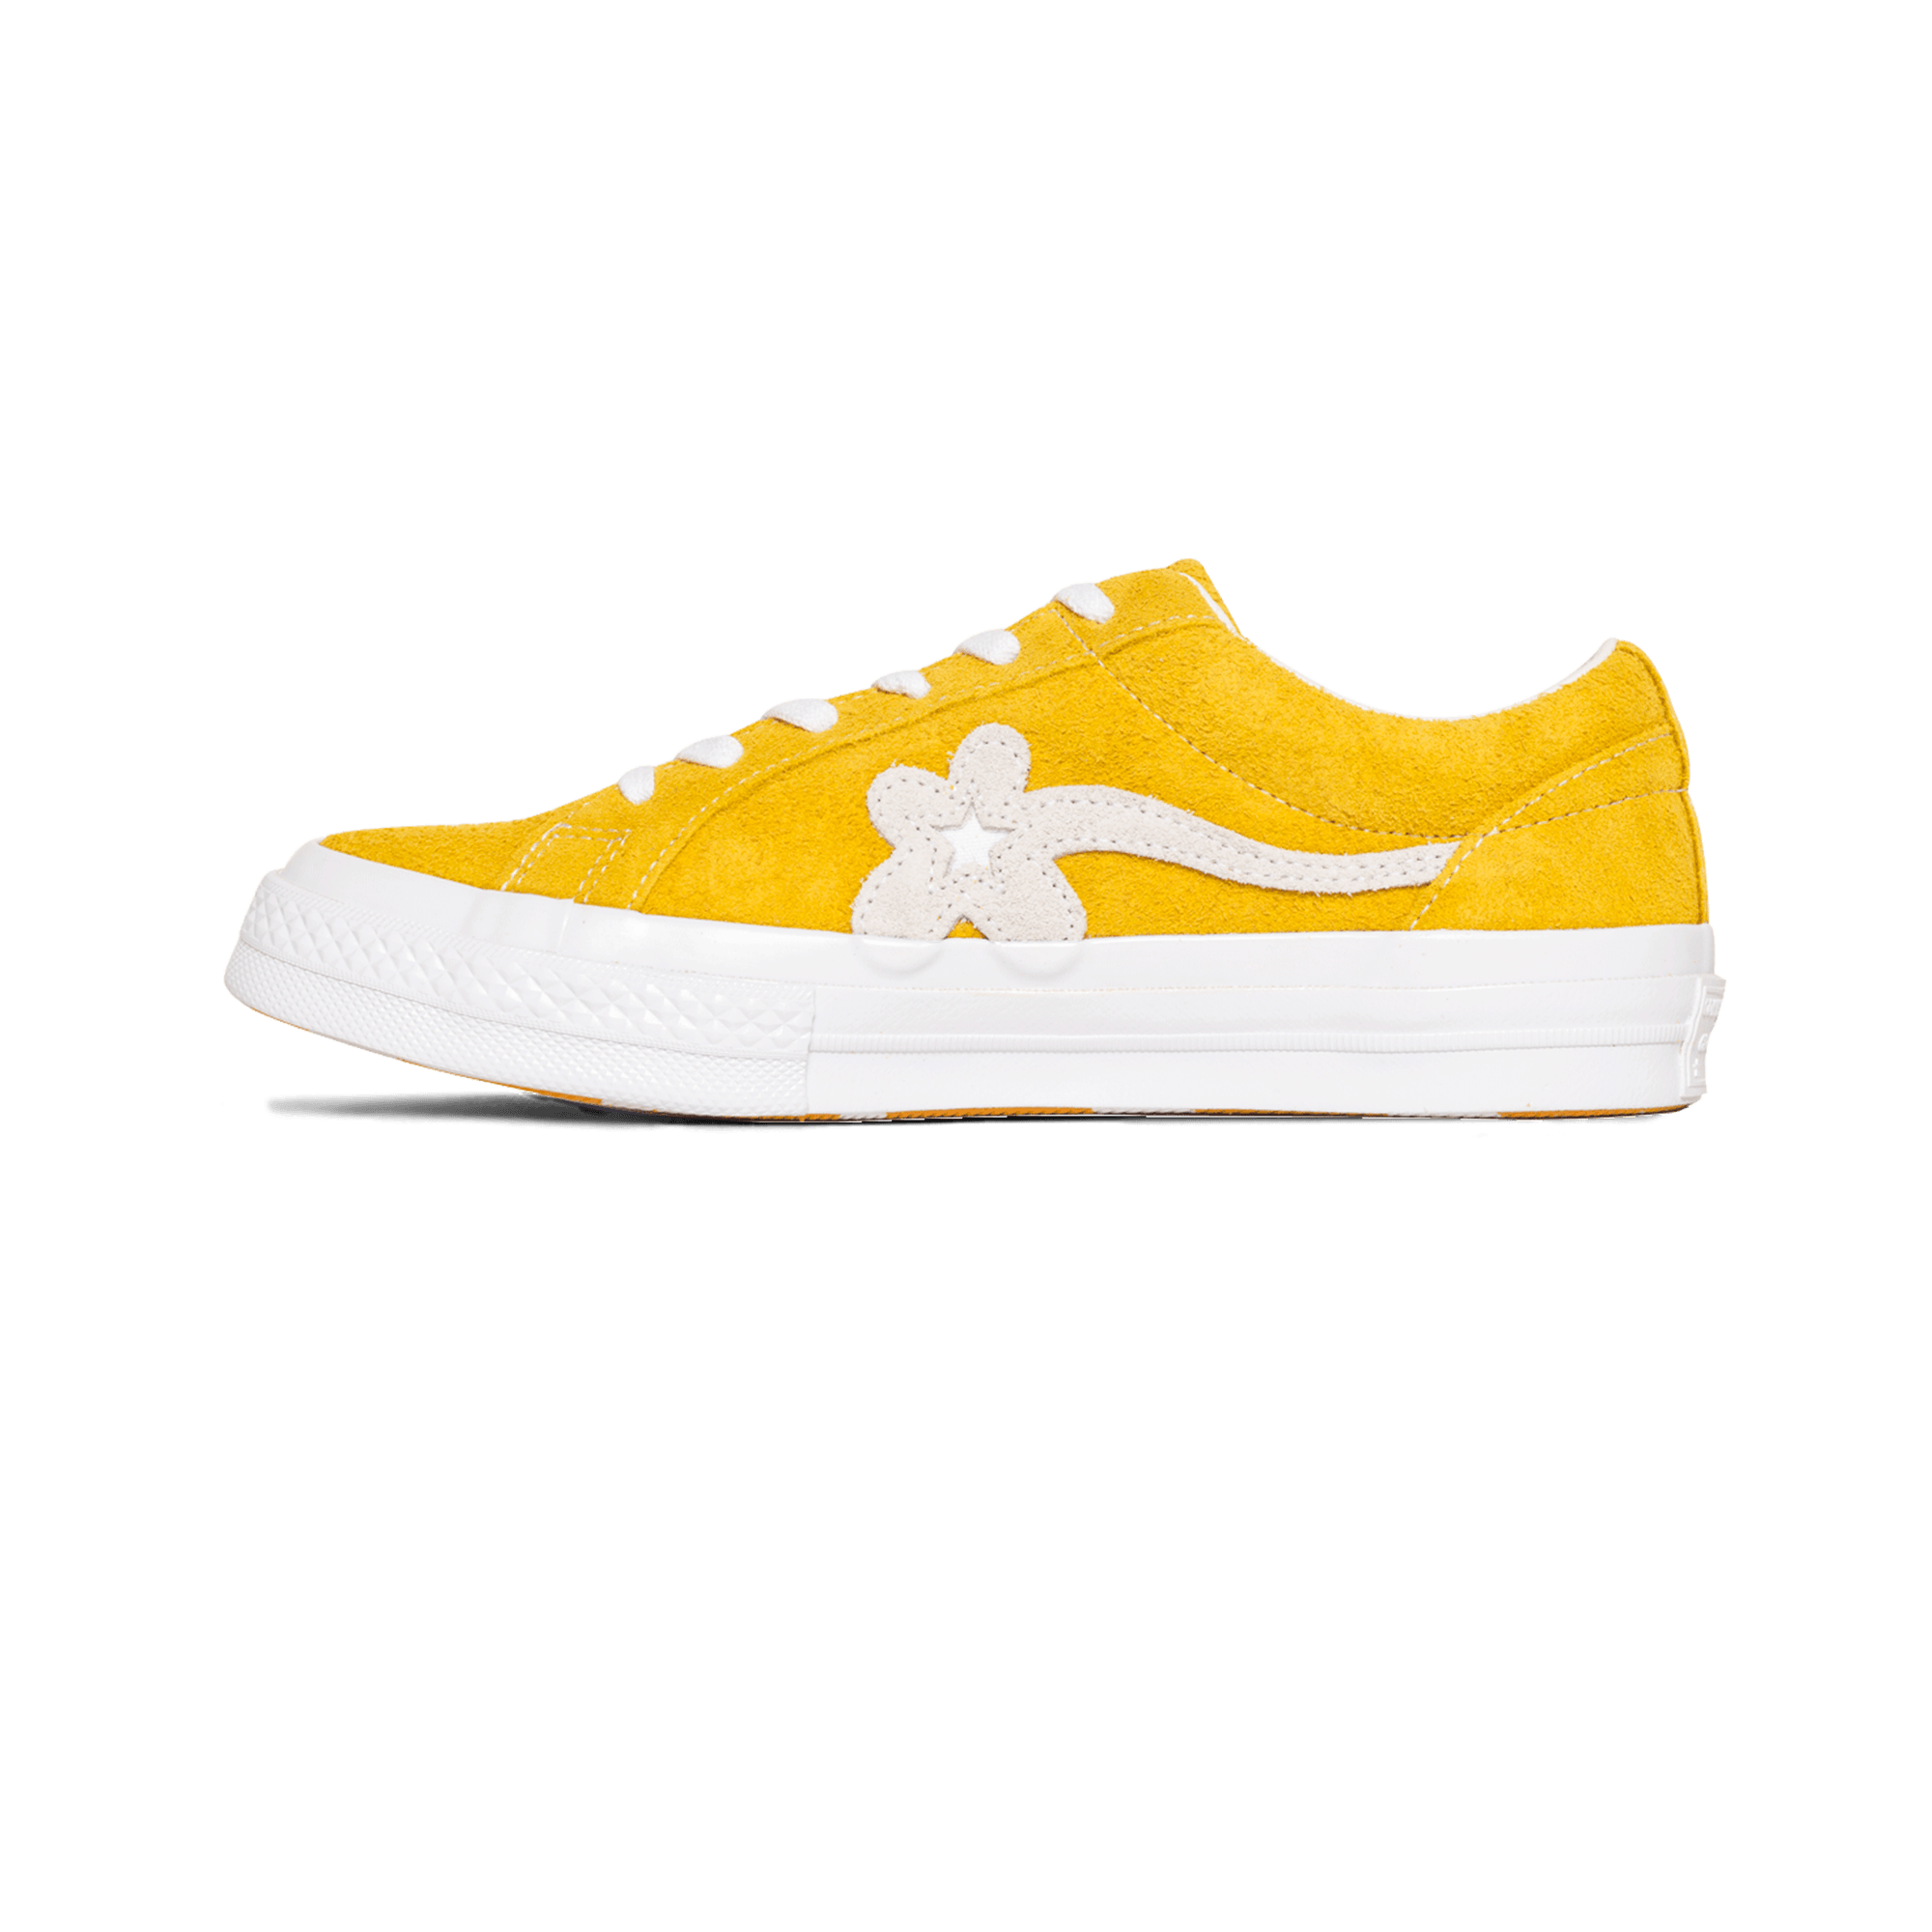 Converse One Star X Golf Le Fleur Solar Power White Men